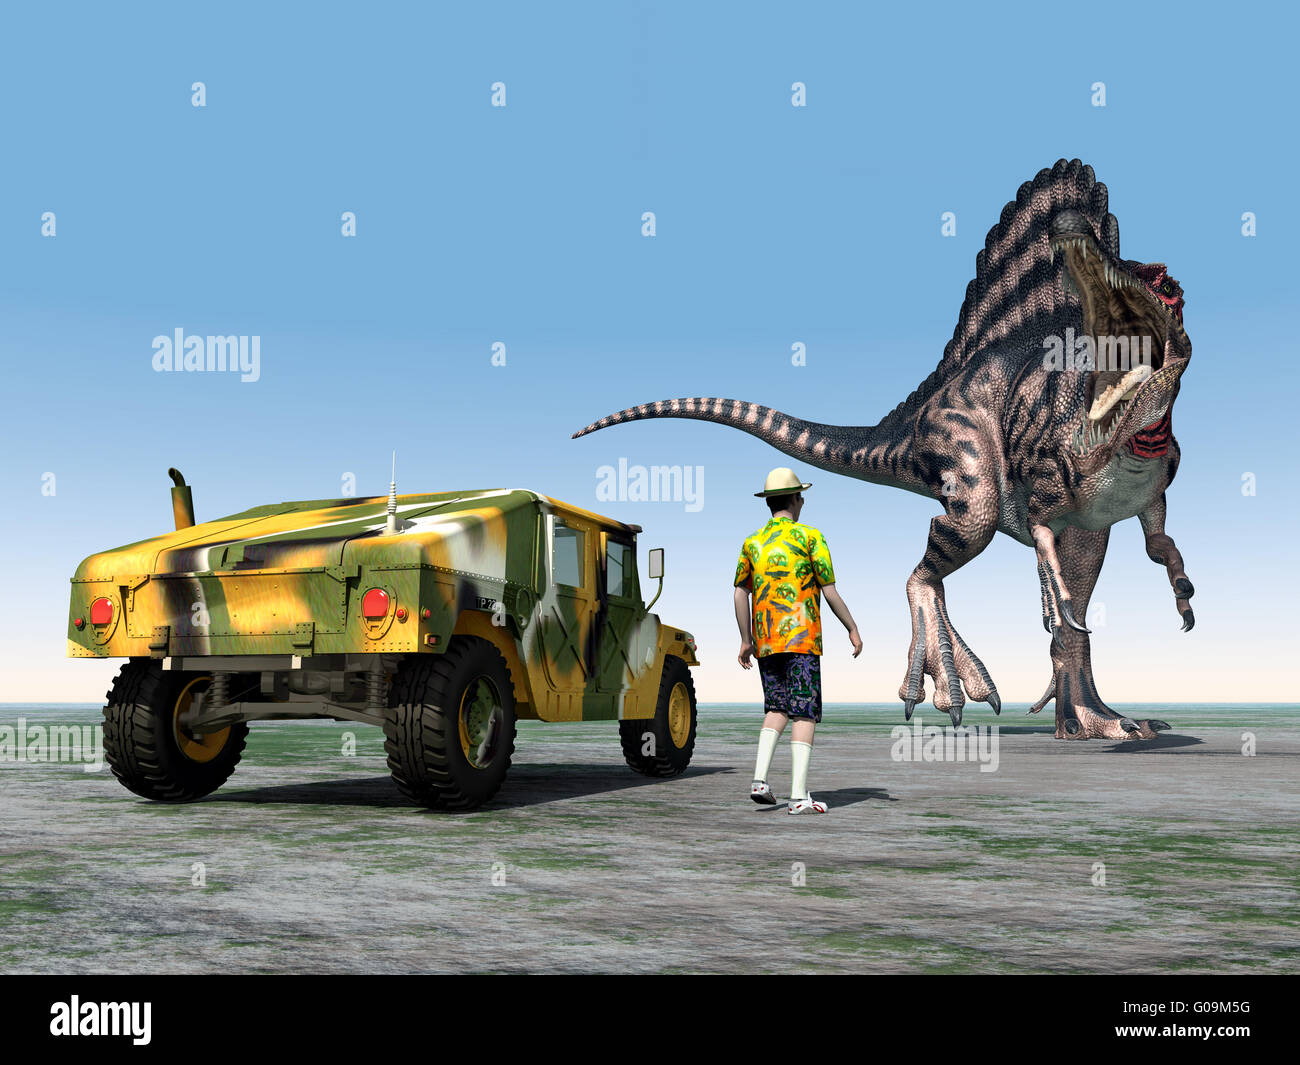 Reckless Tourist and the Dinosaur Spinosaurus - Stock Image